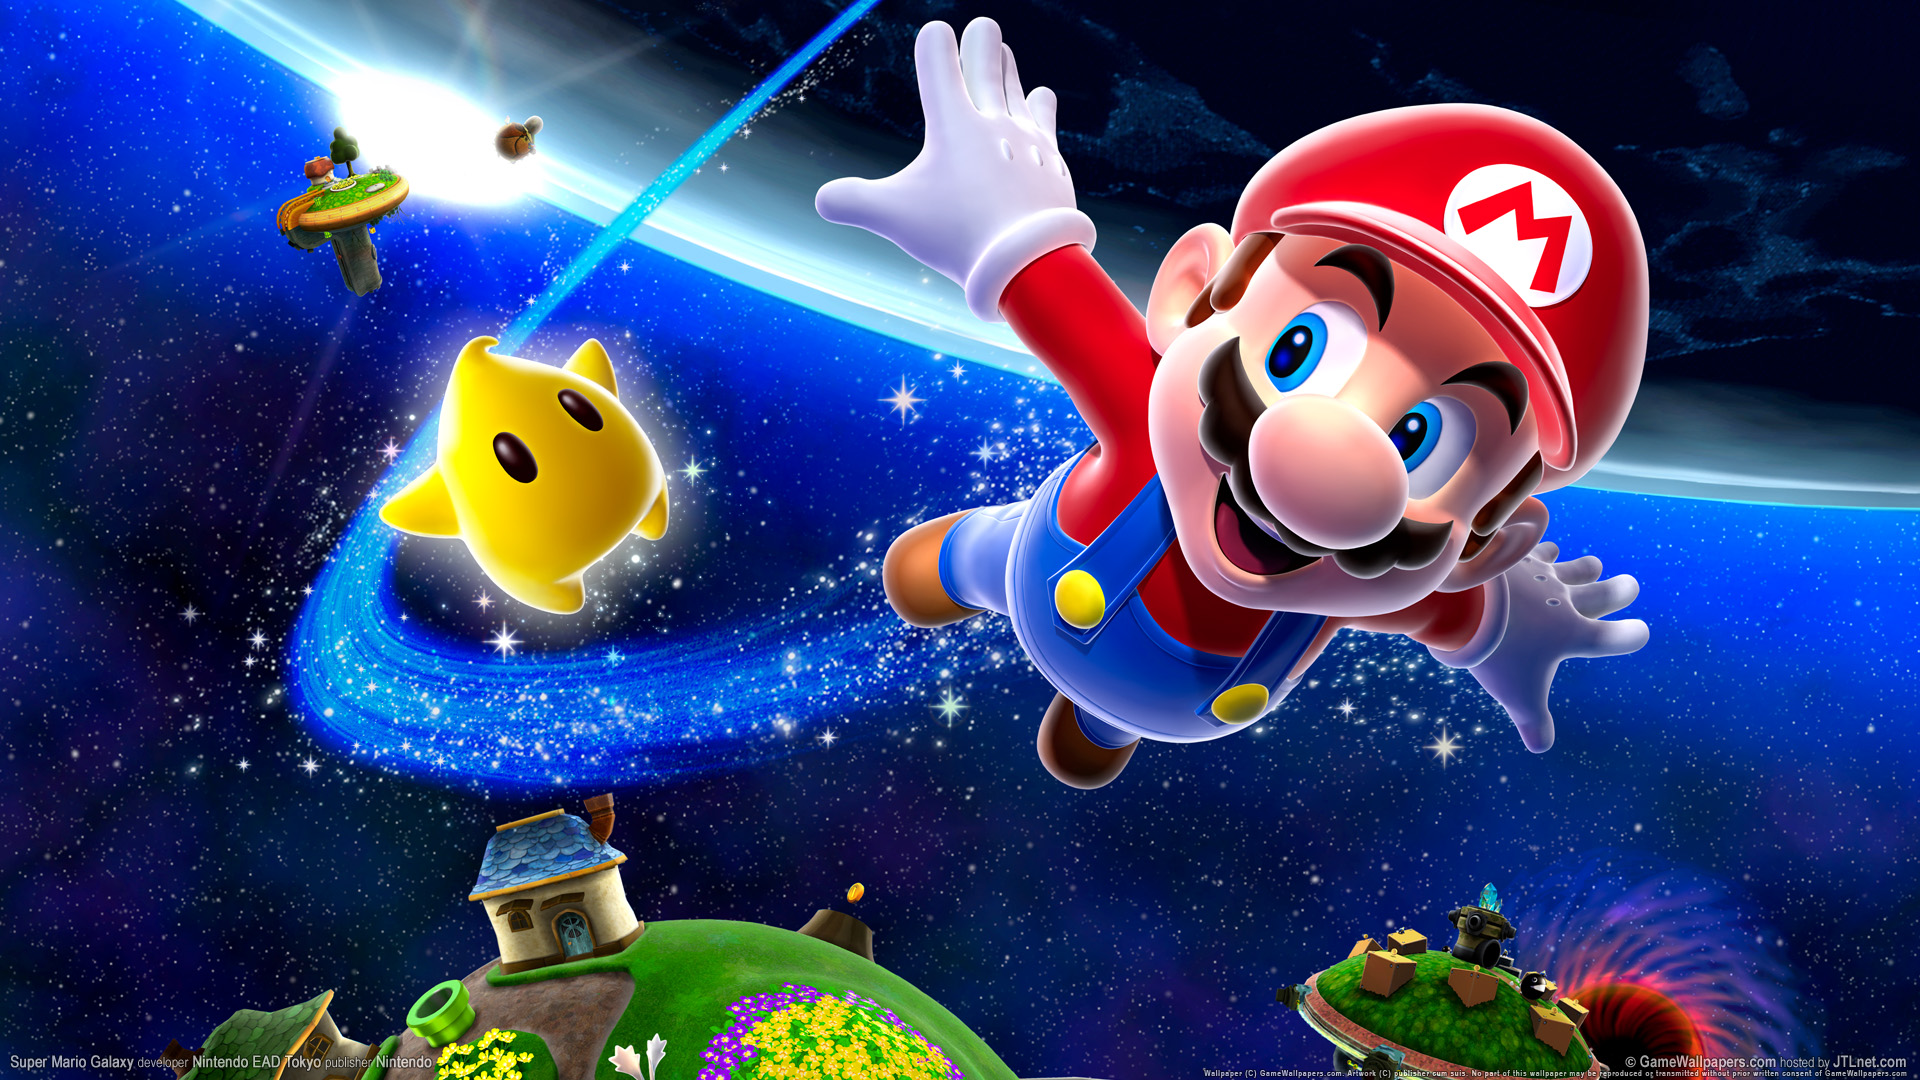 Super Mario Galaxy 453.71 Kb